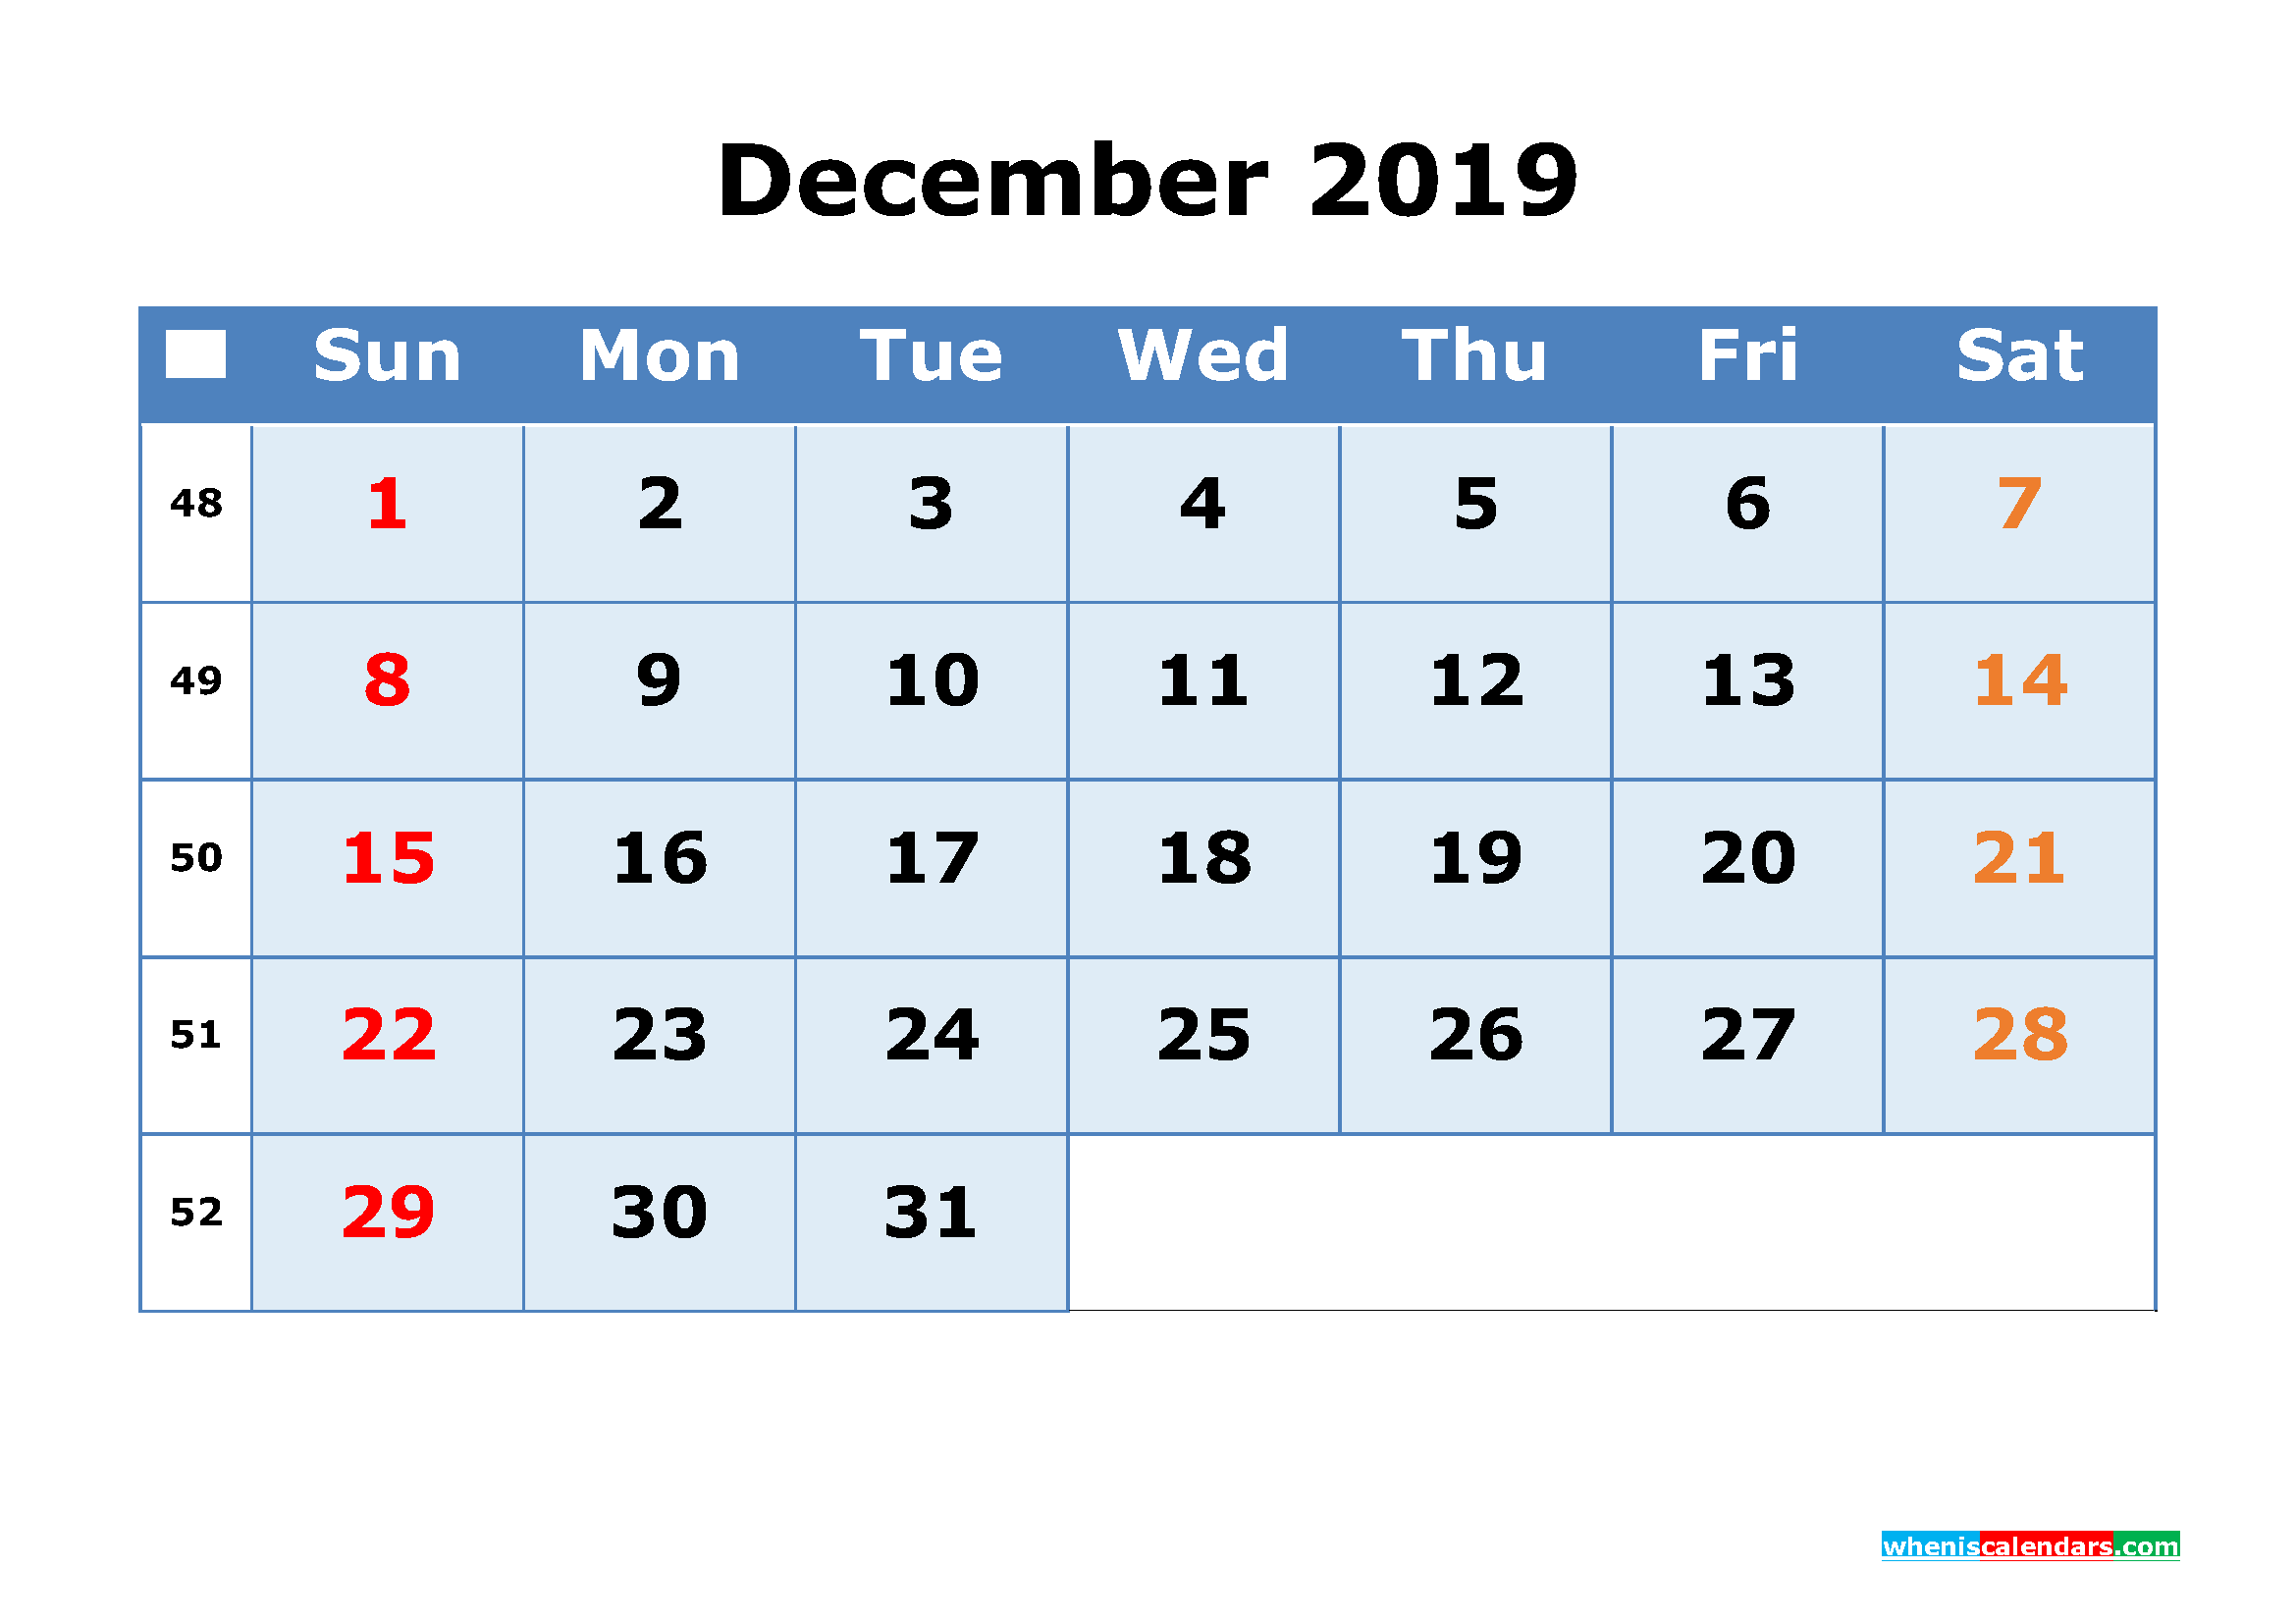 December 2019 Printable Calendar with Week Numbers as PDF, JPG